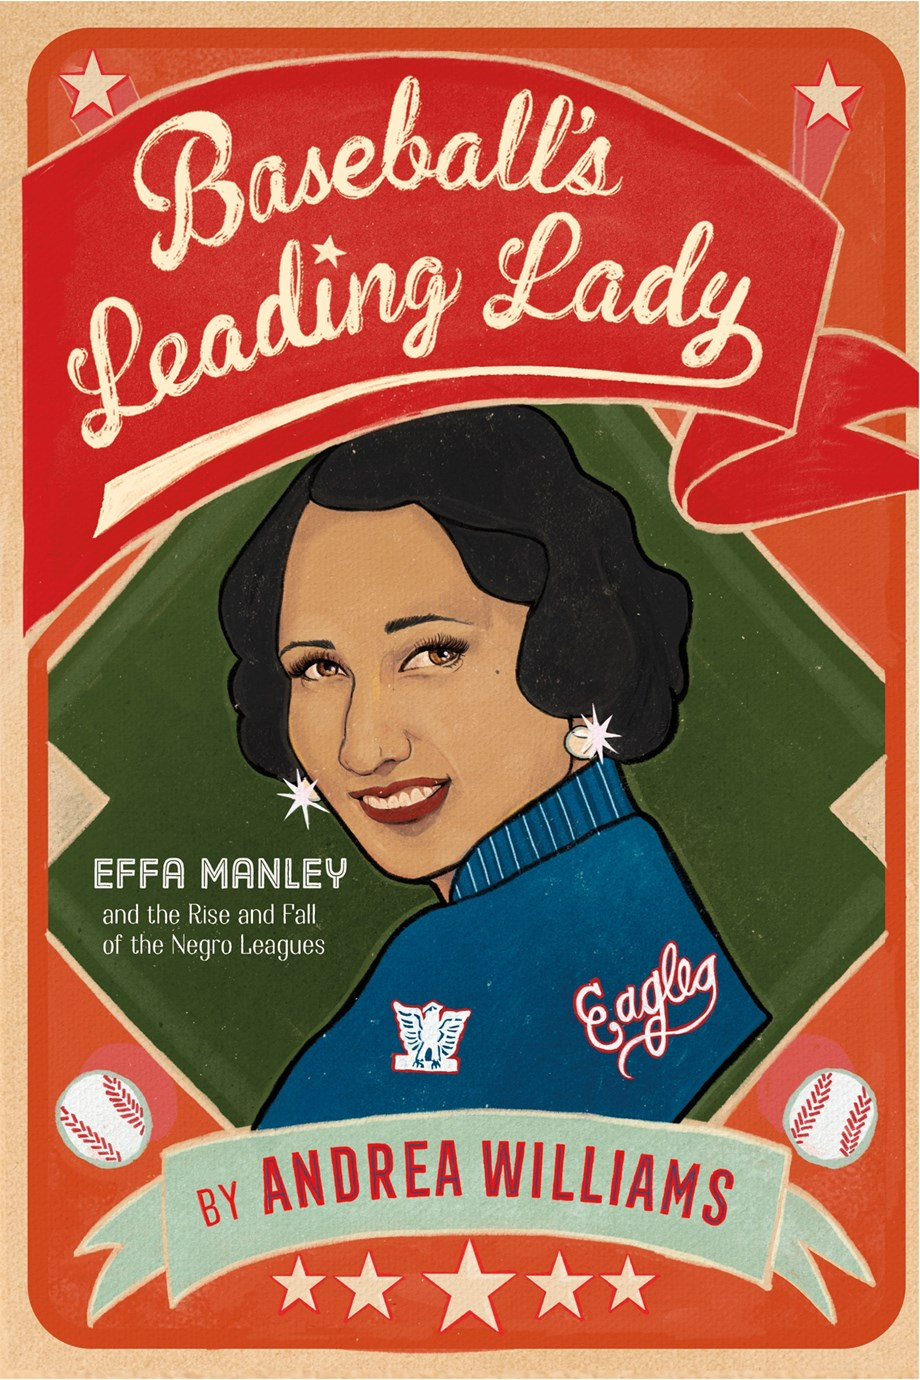 Baseball's Leading Lady: Effa Manley and the Rise and Fall of the Negro Leagues